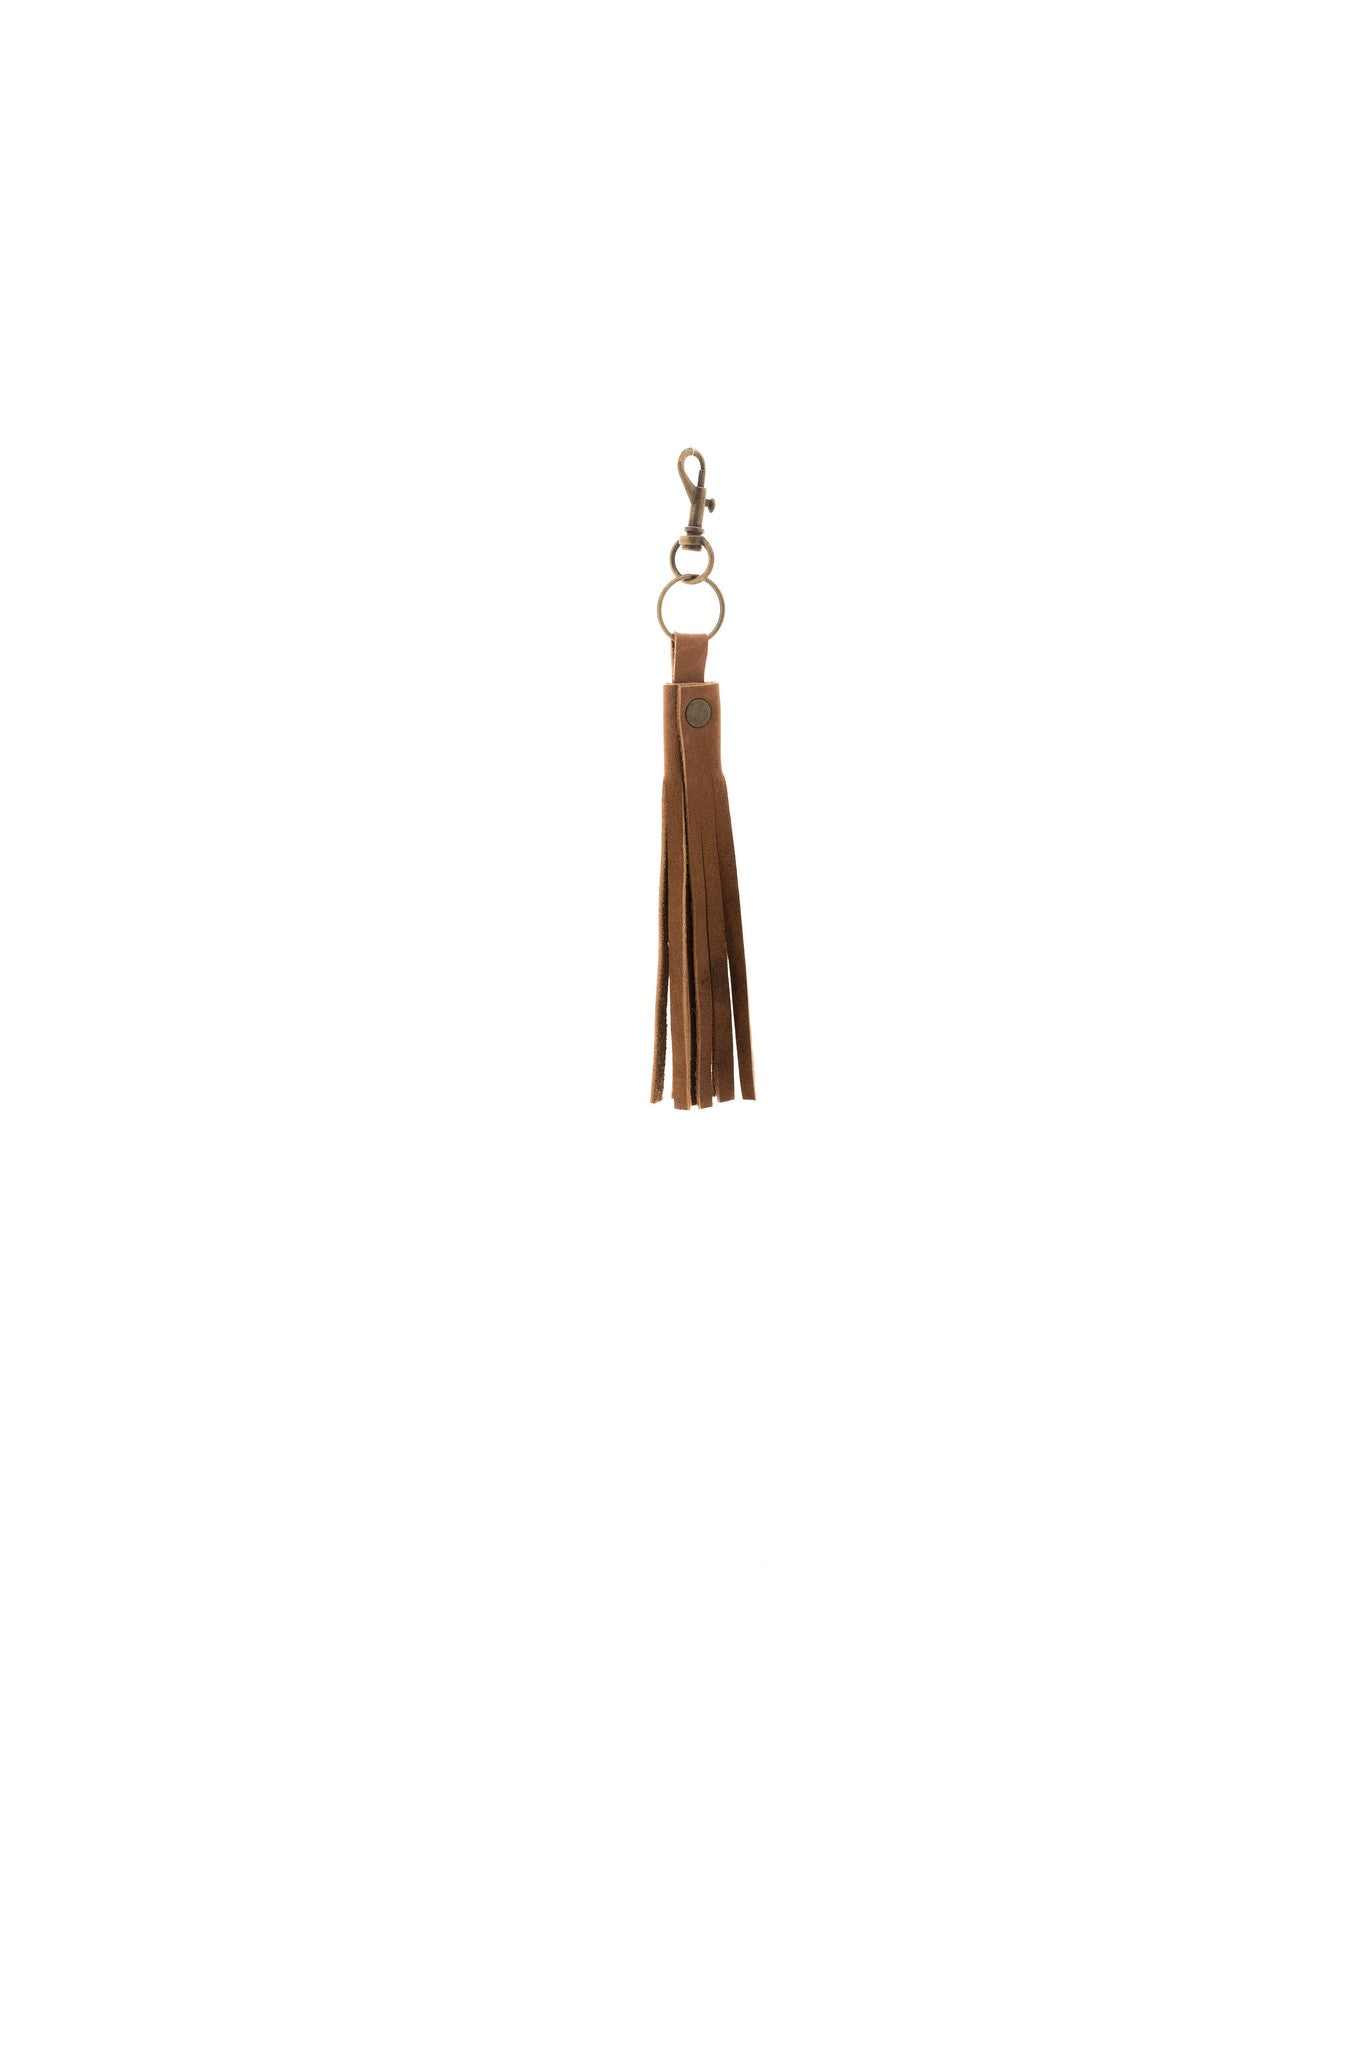 Tassel Key Chain - Large Leather - handcrafted by Market Canvas Leather in Tofino, BC, Canada